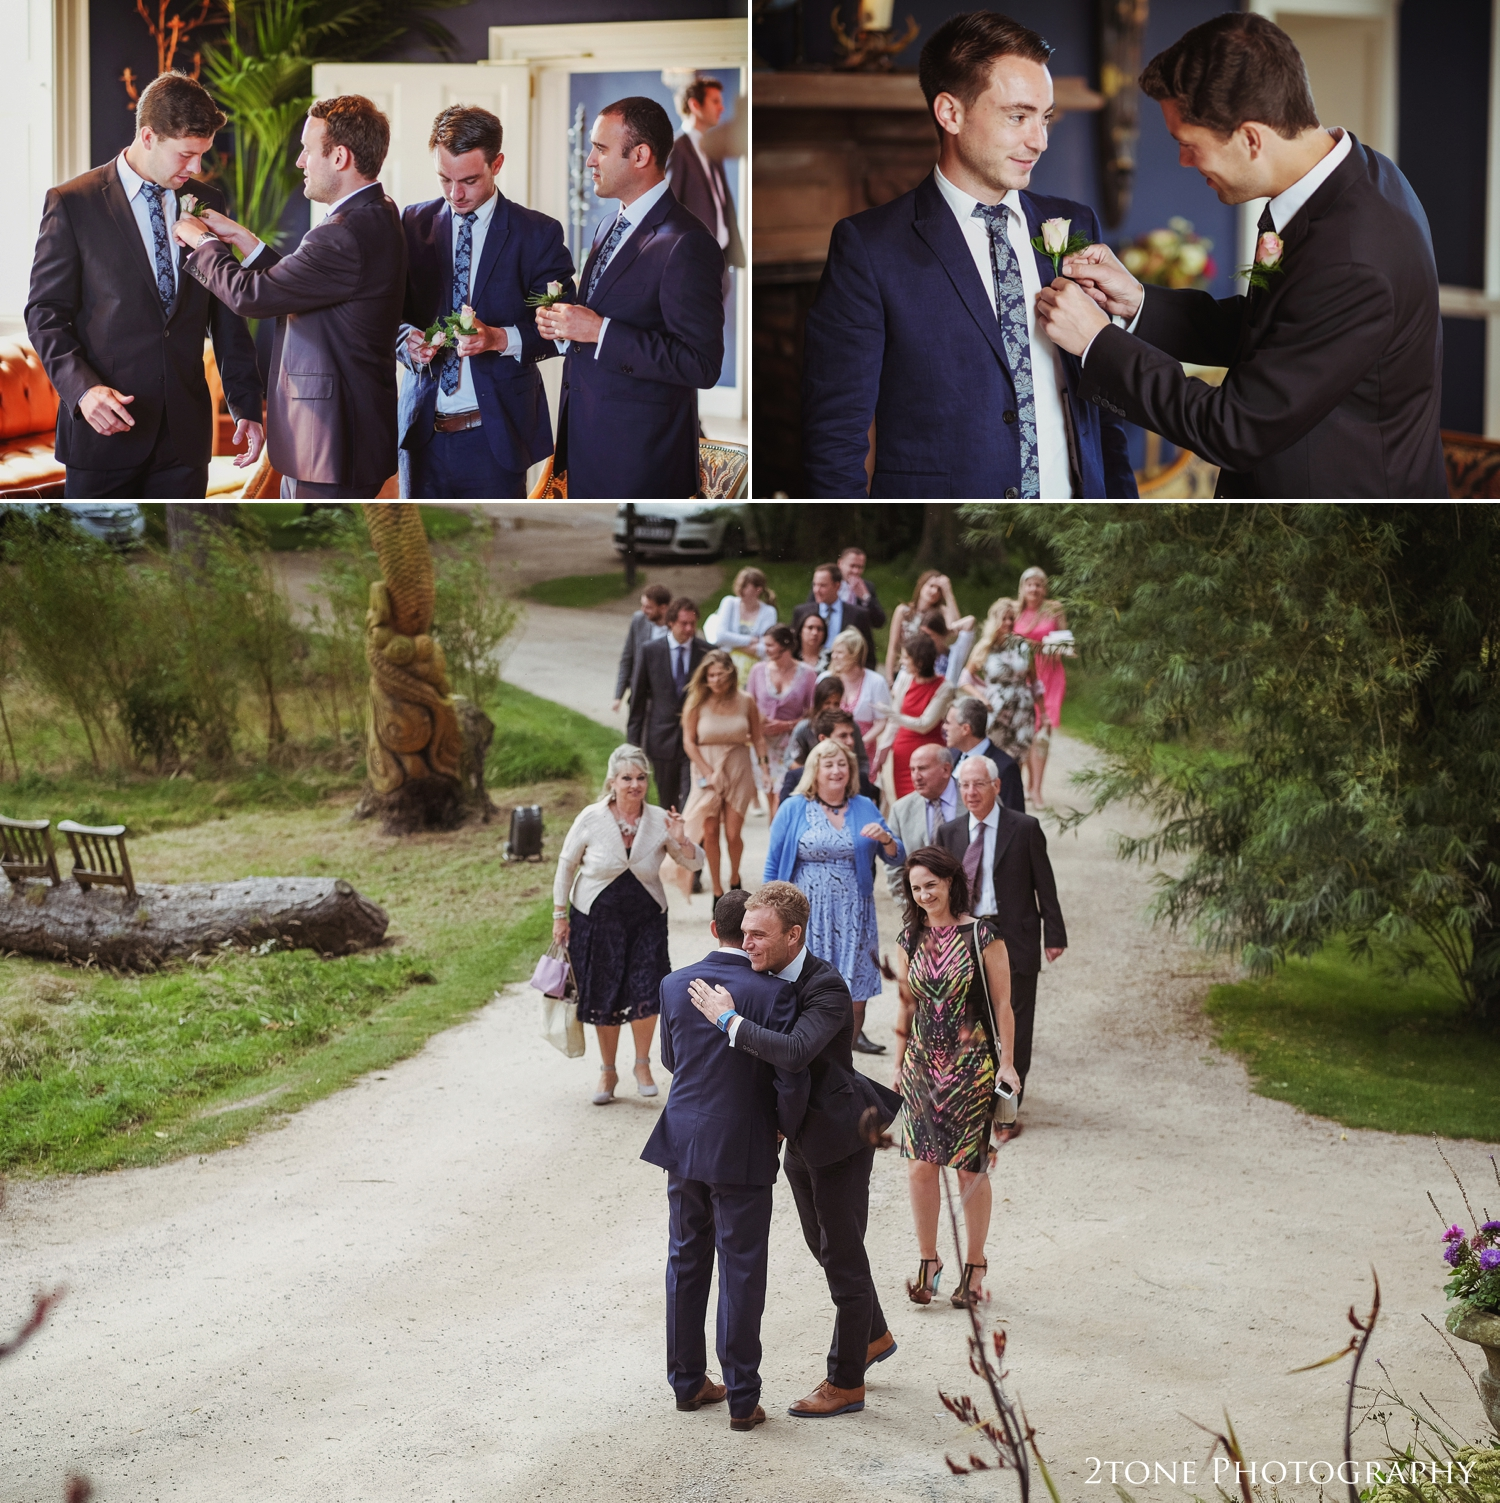 Back to Newton Hall in time the greet their wedding guests.